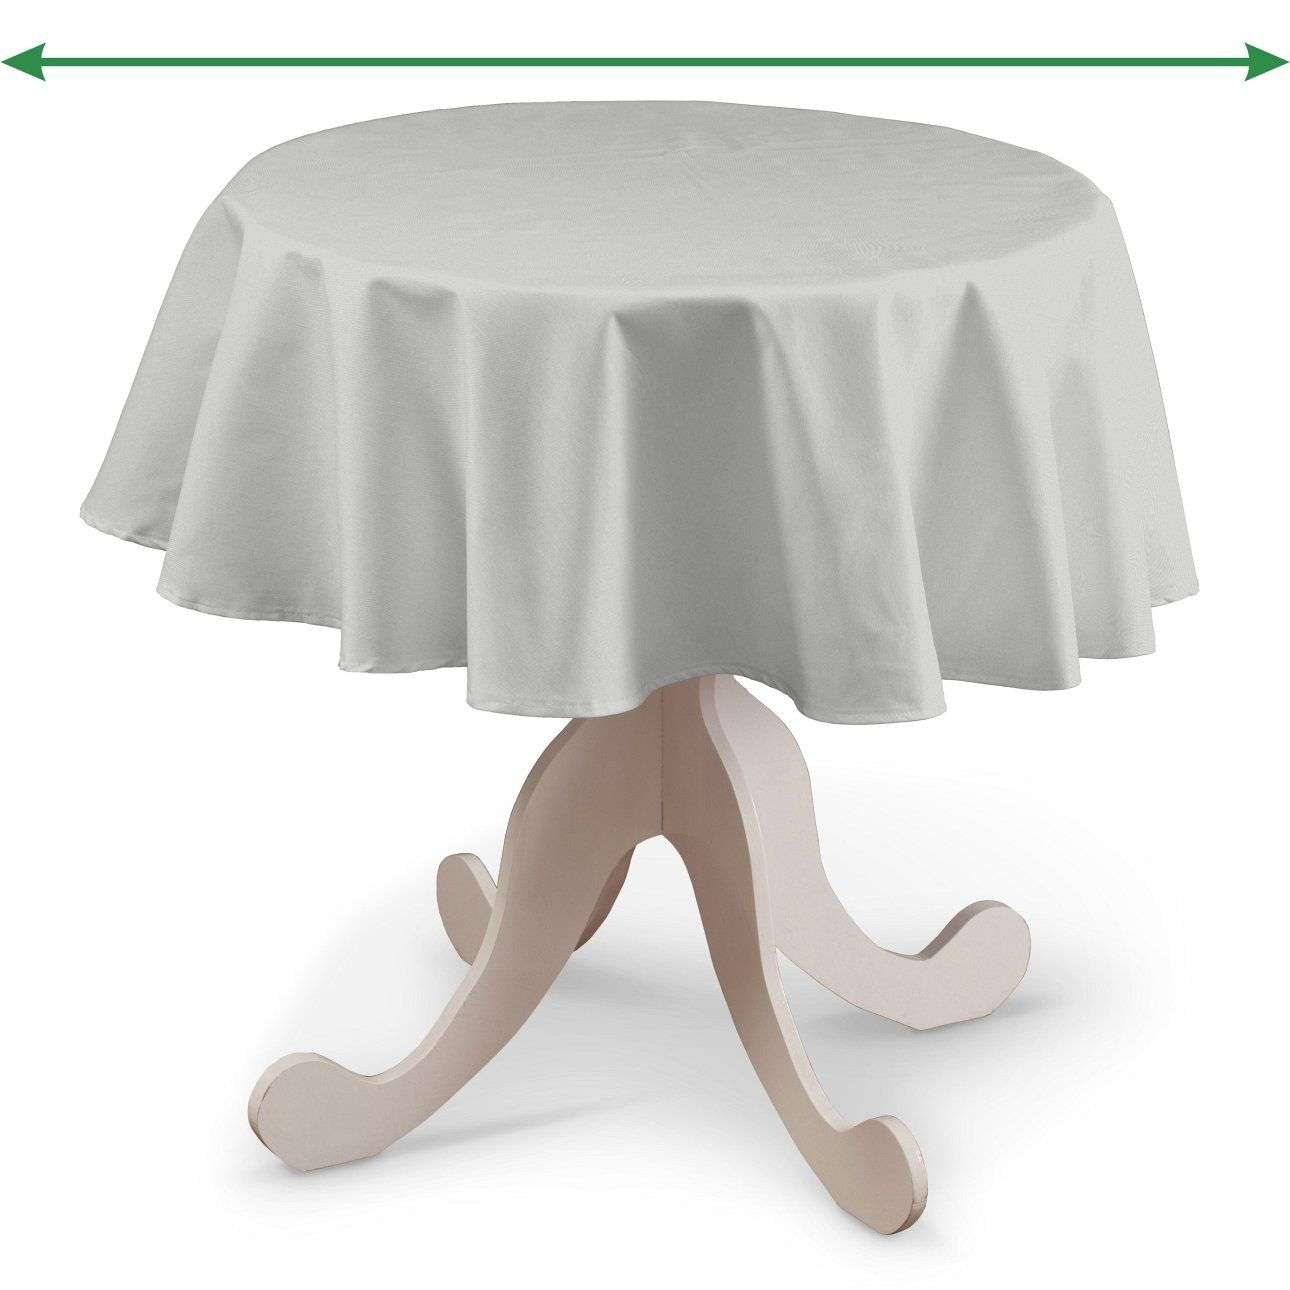 Round tablecloth in collection Damasco, fabric: 141-77